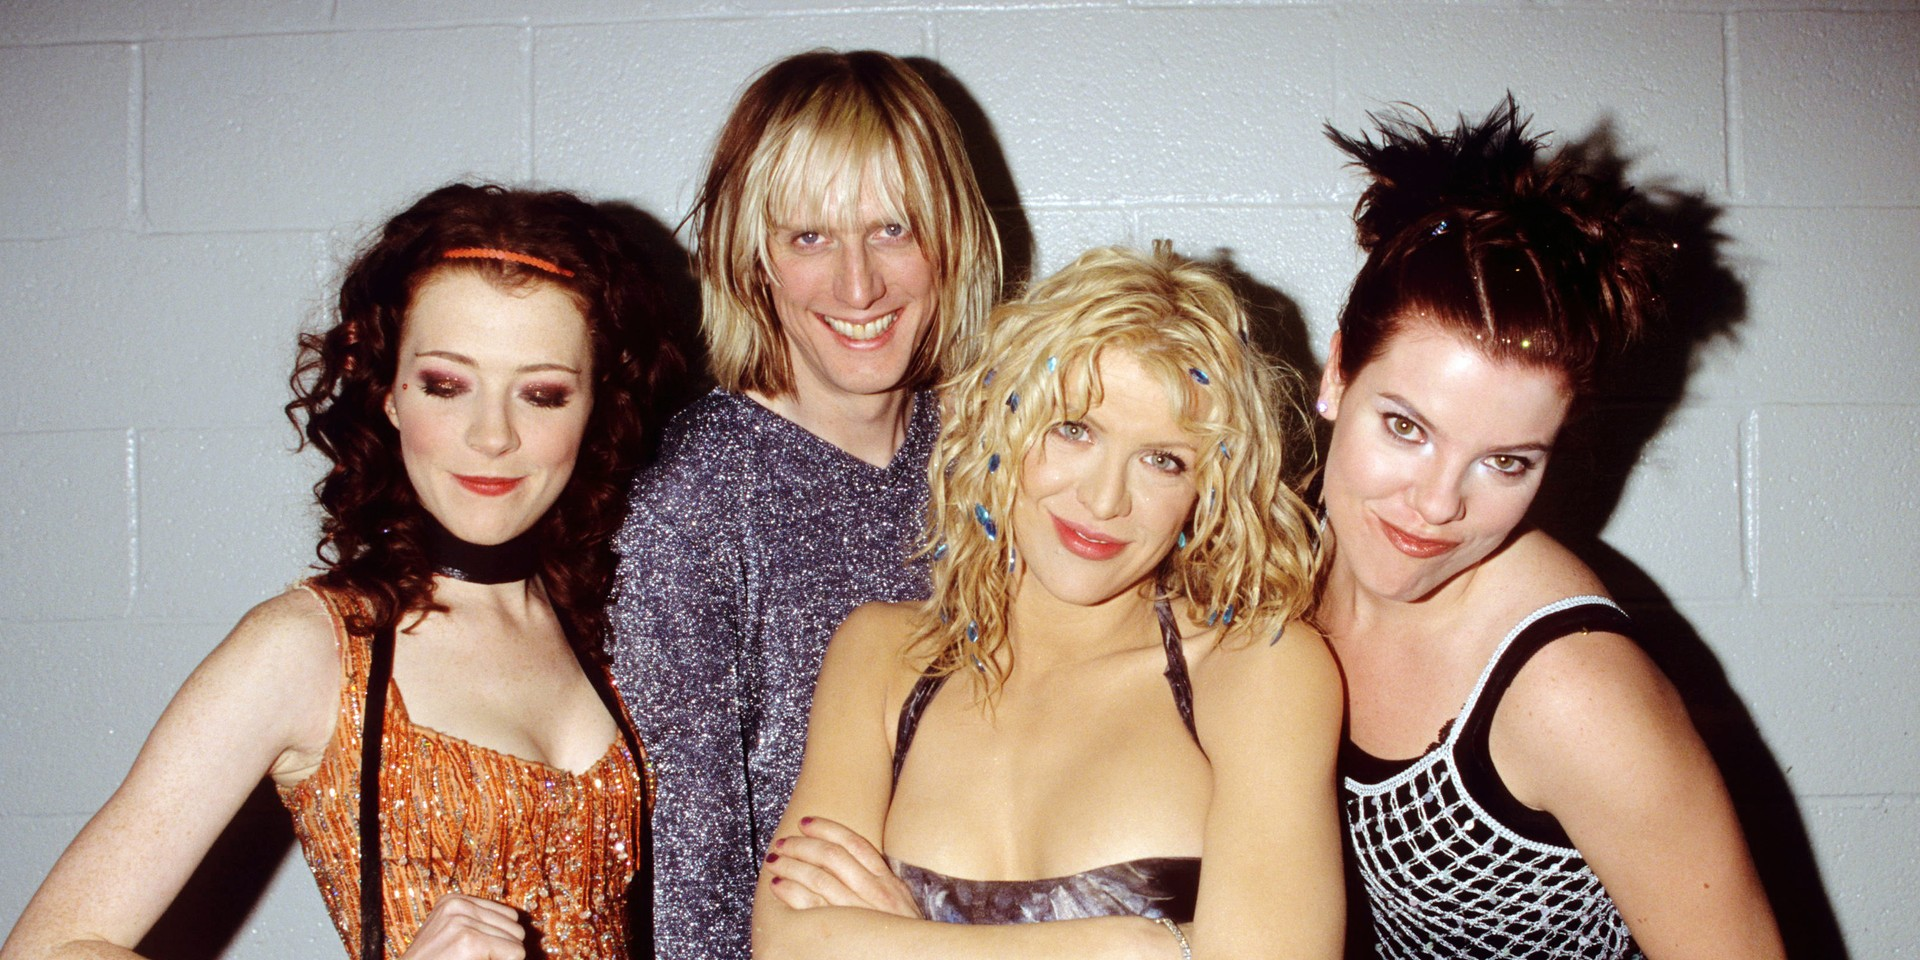 Melissa Auf Der Maur, ex-bassist of Hole, wants to reunite the band